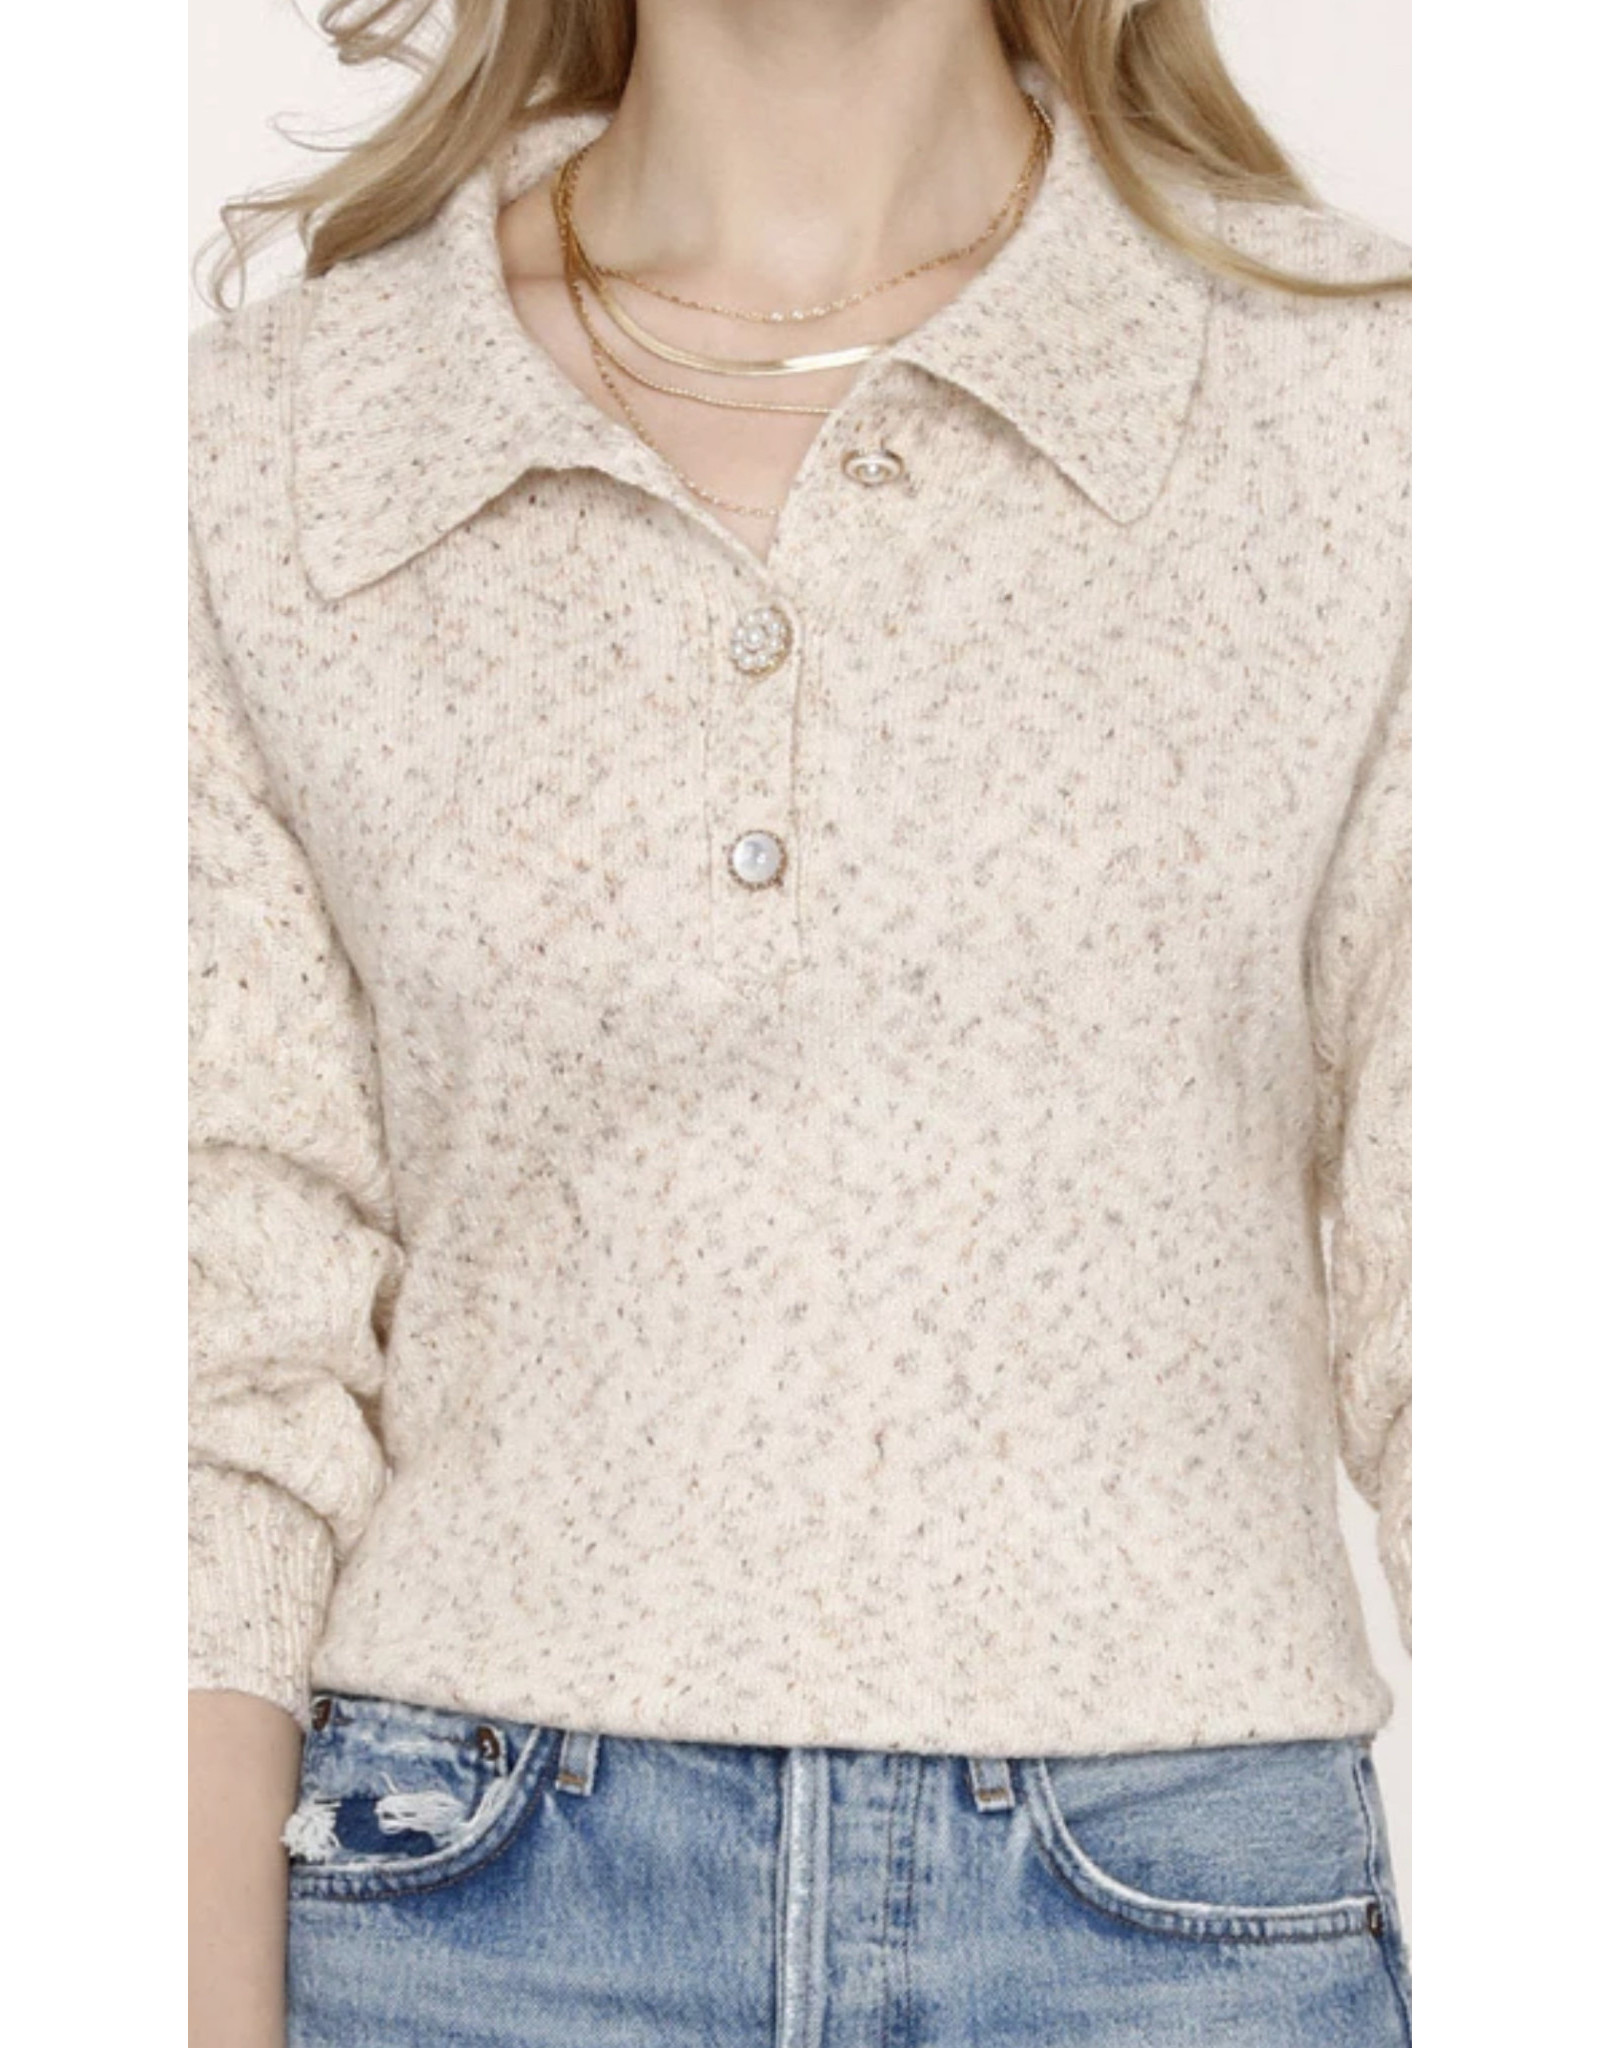 3 PEARL BUTTON SWEATER